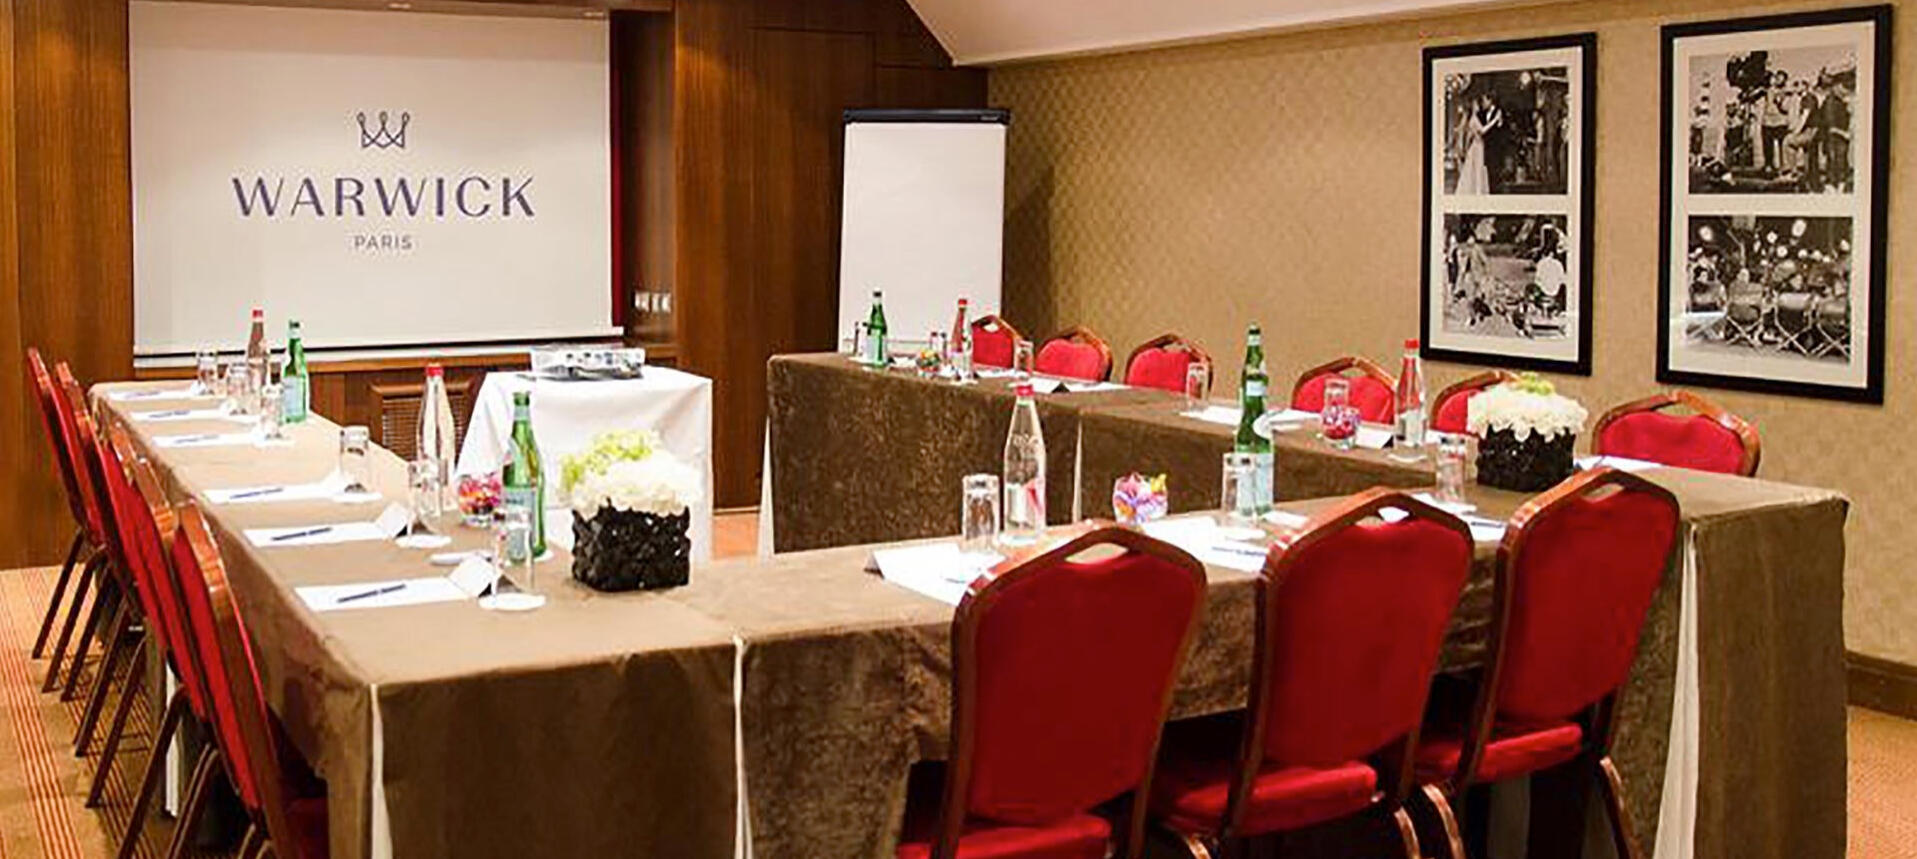 Meeting Room at Warwick Paris